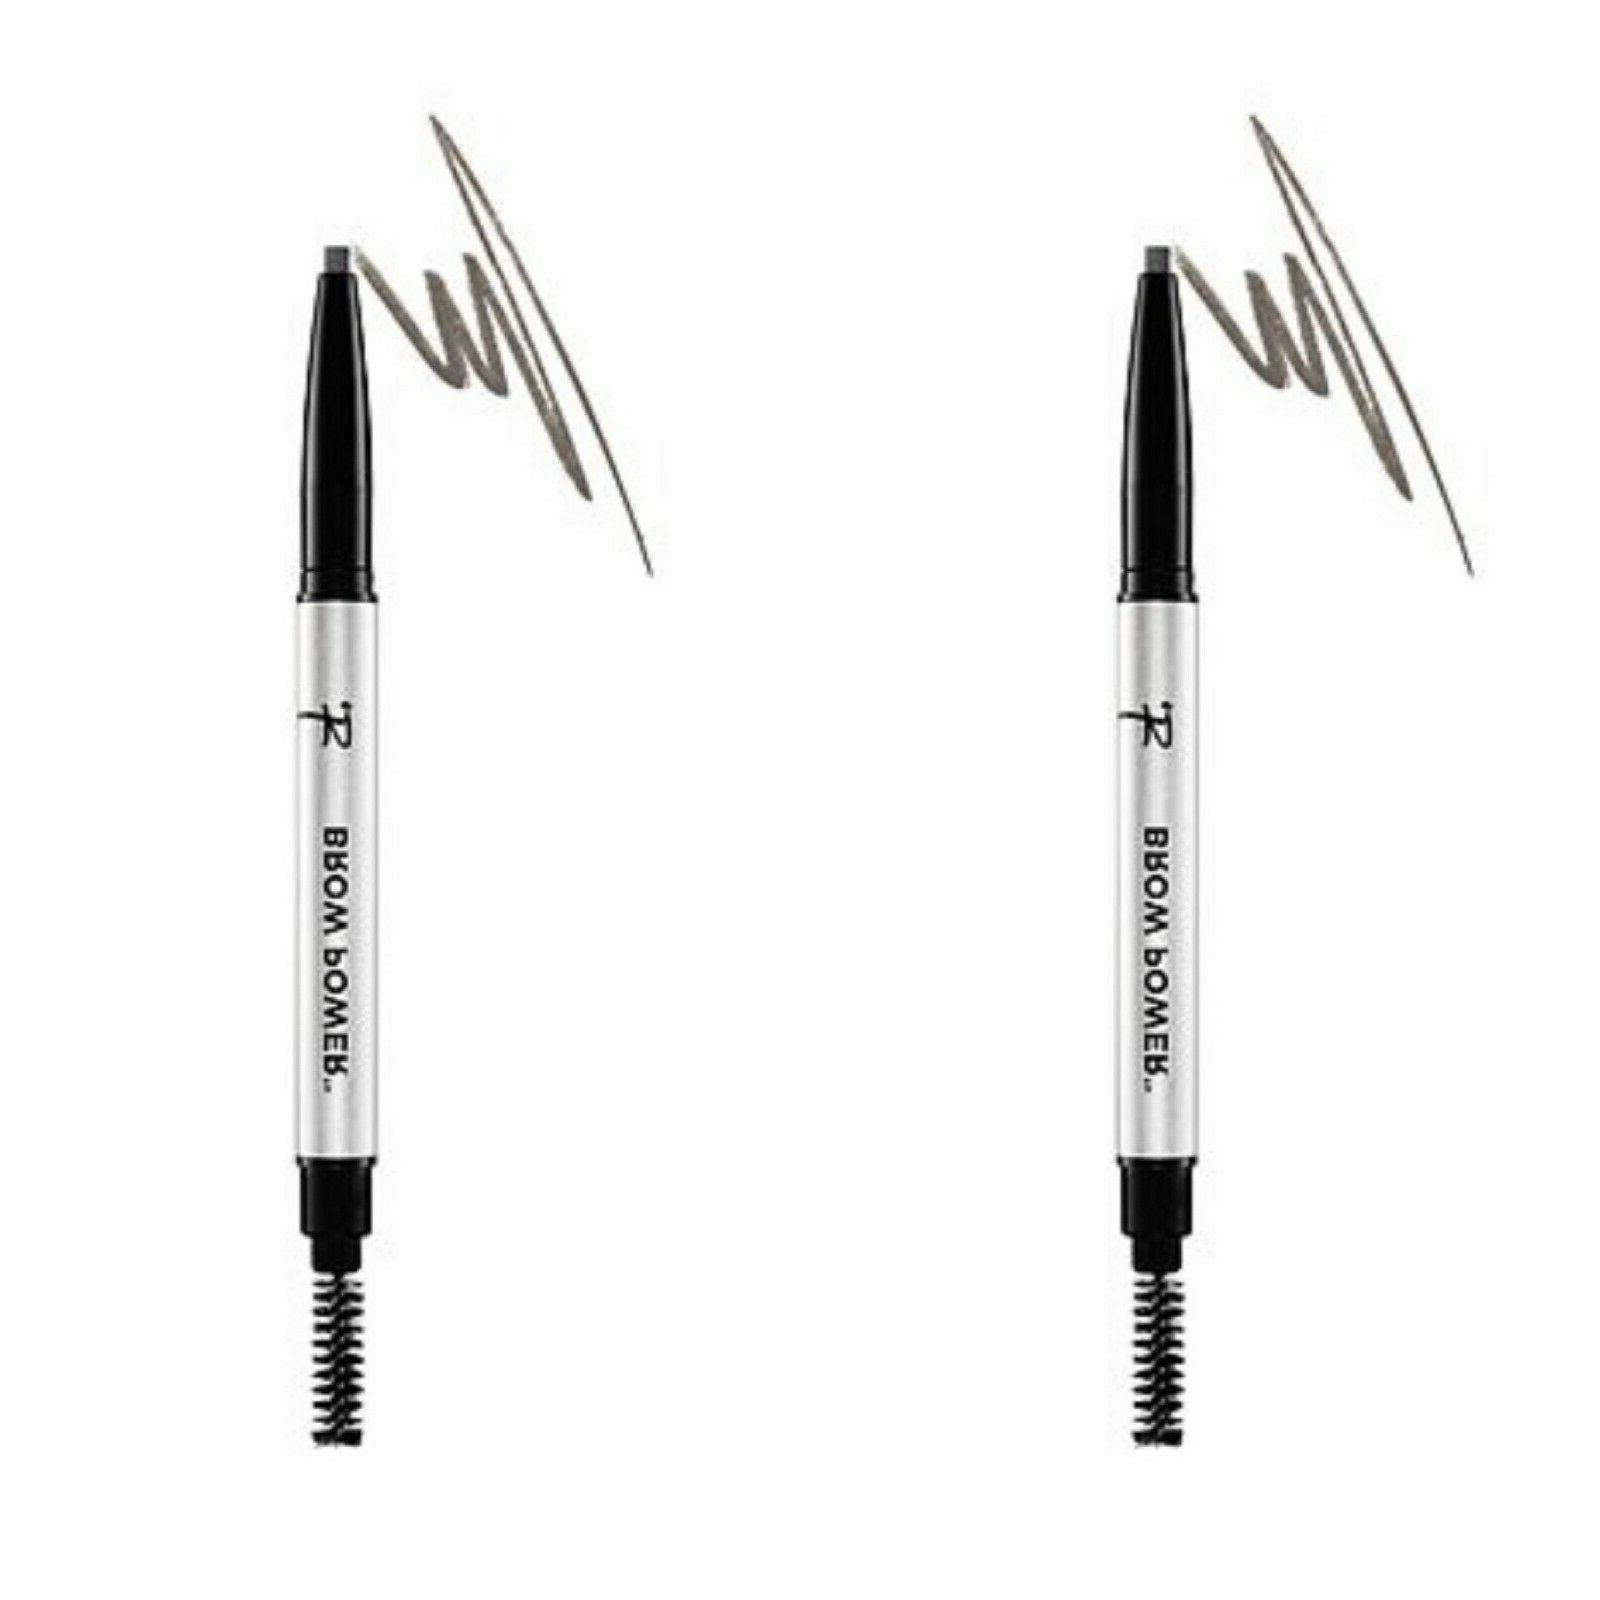 2 pack brow power full eyebrow pencil